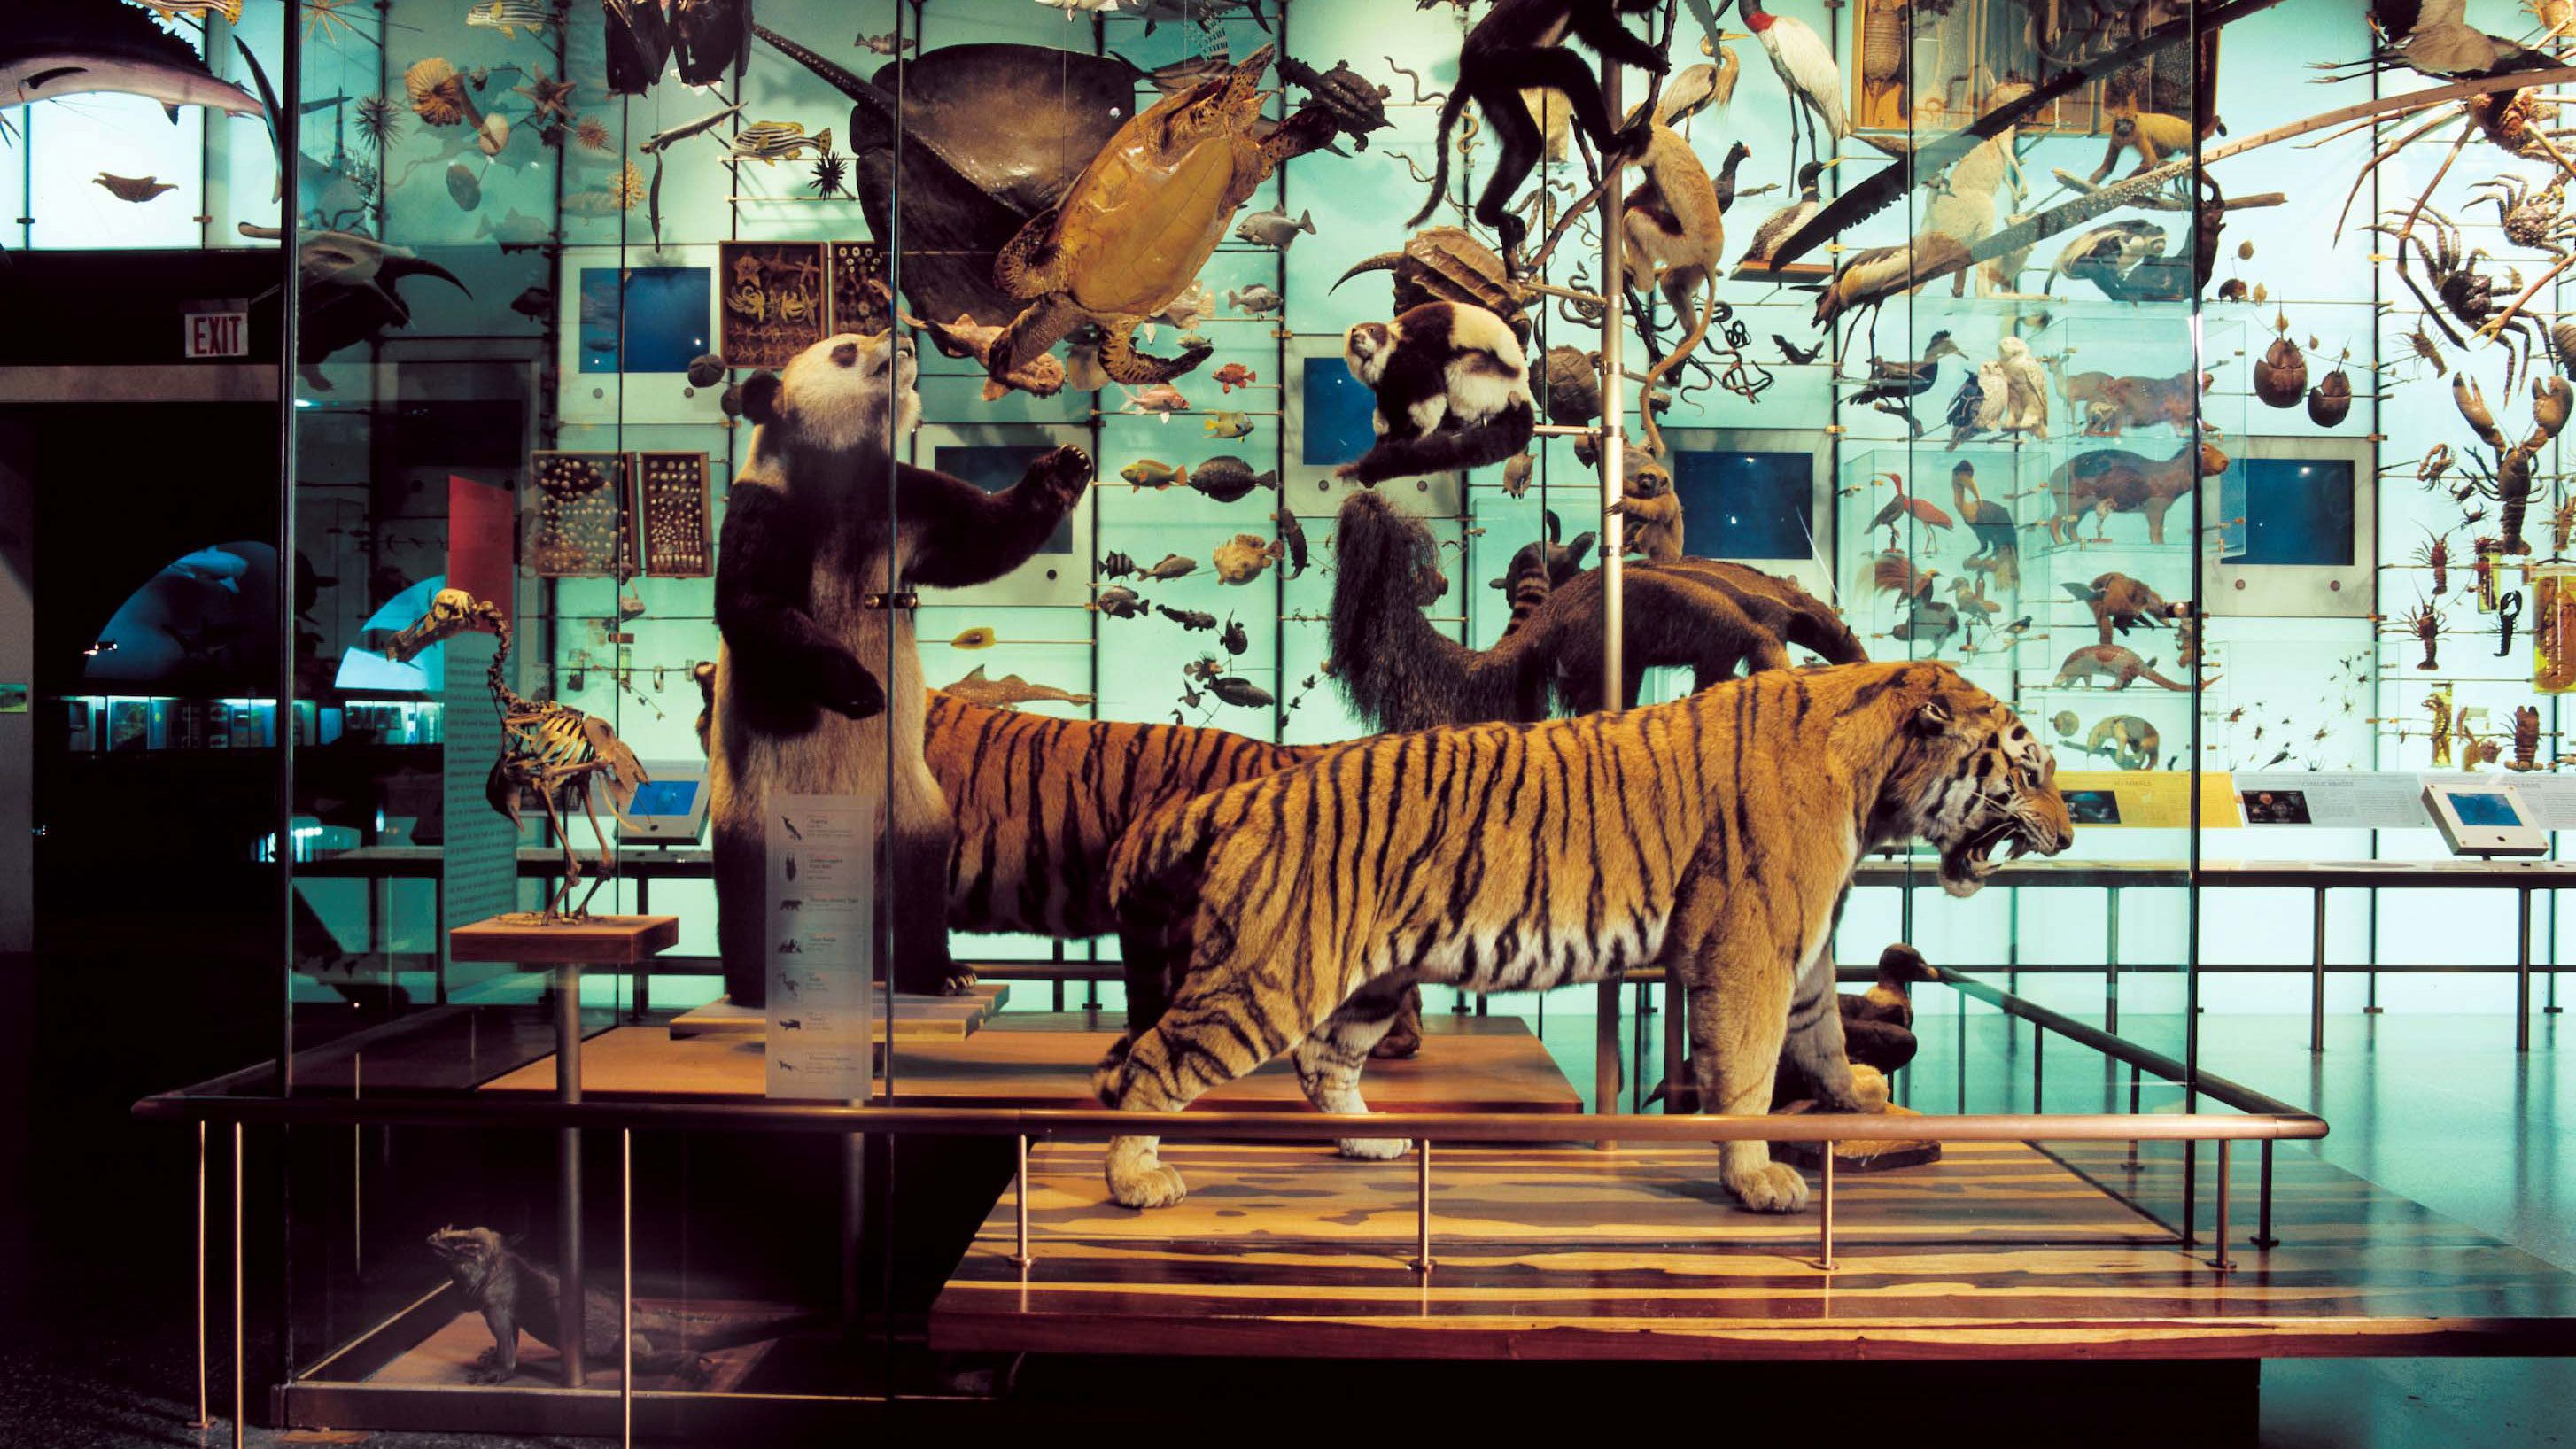 Display of animals at American Museum of Natural History in New York